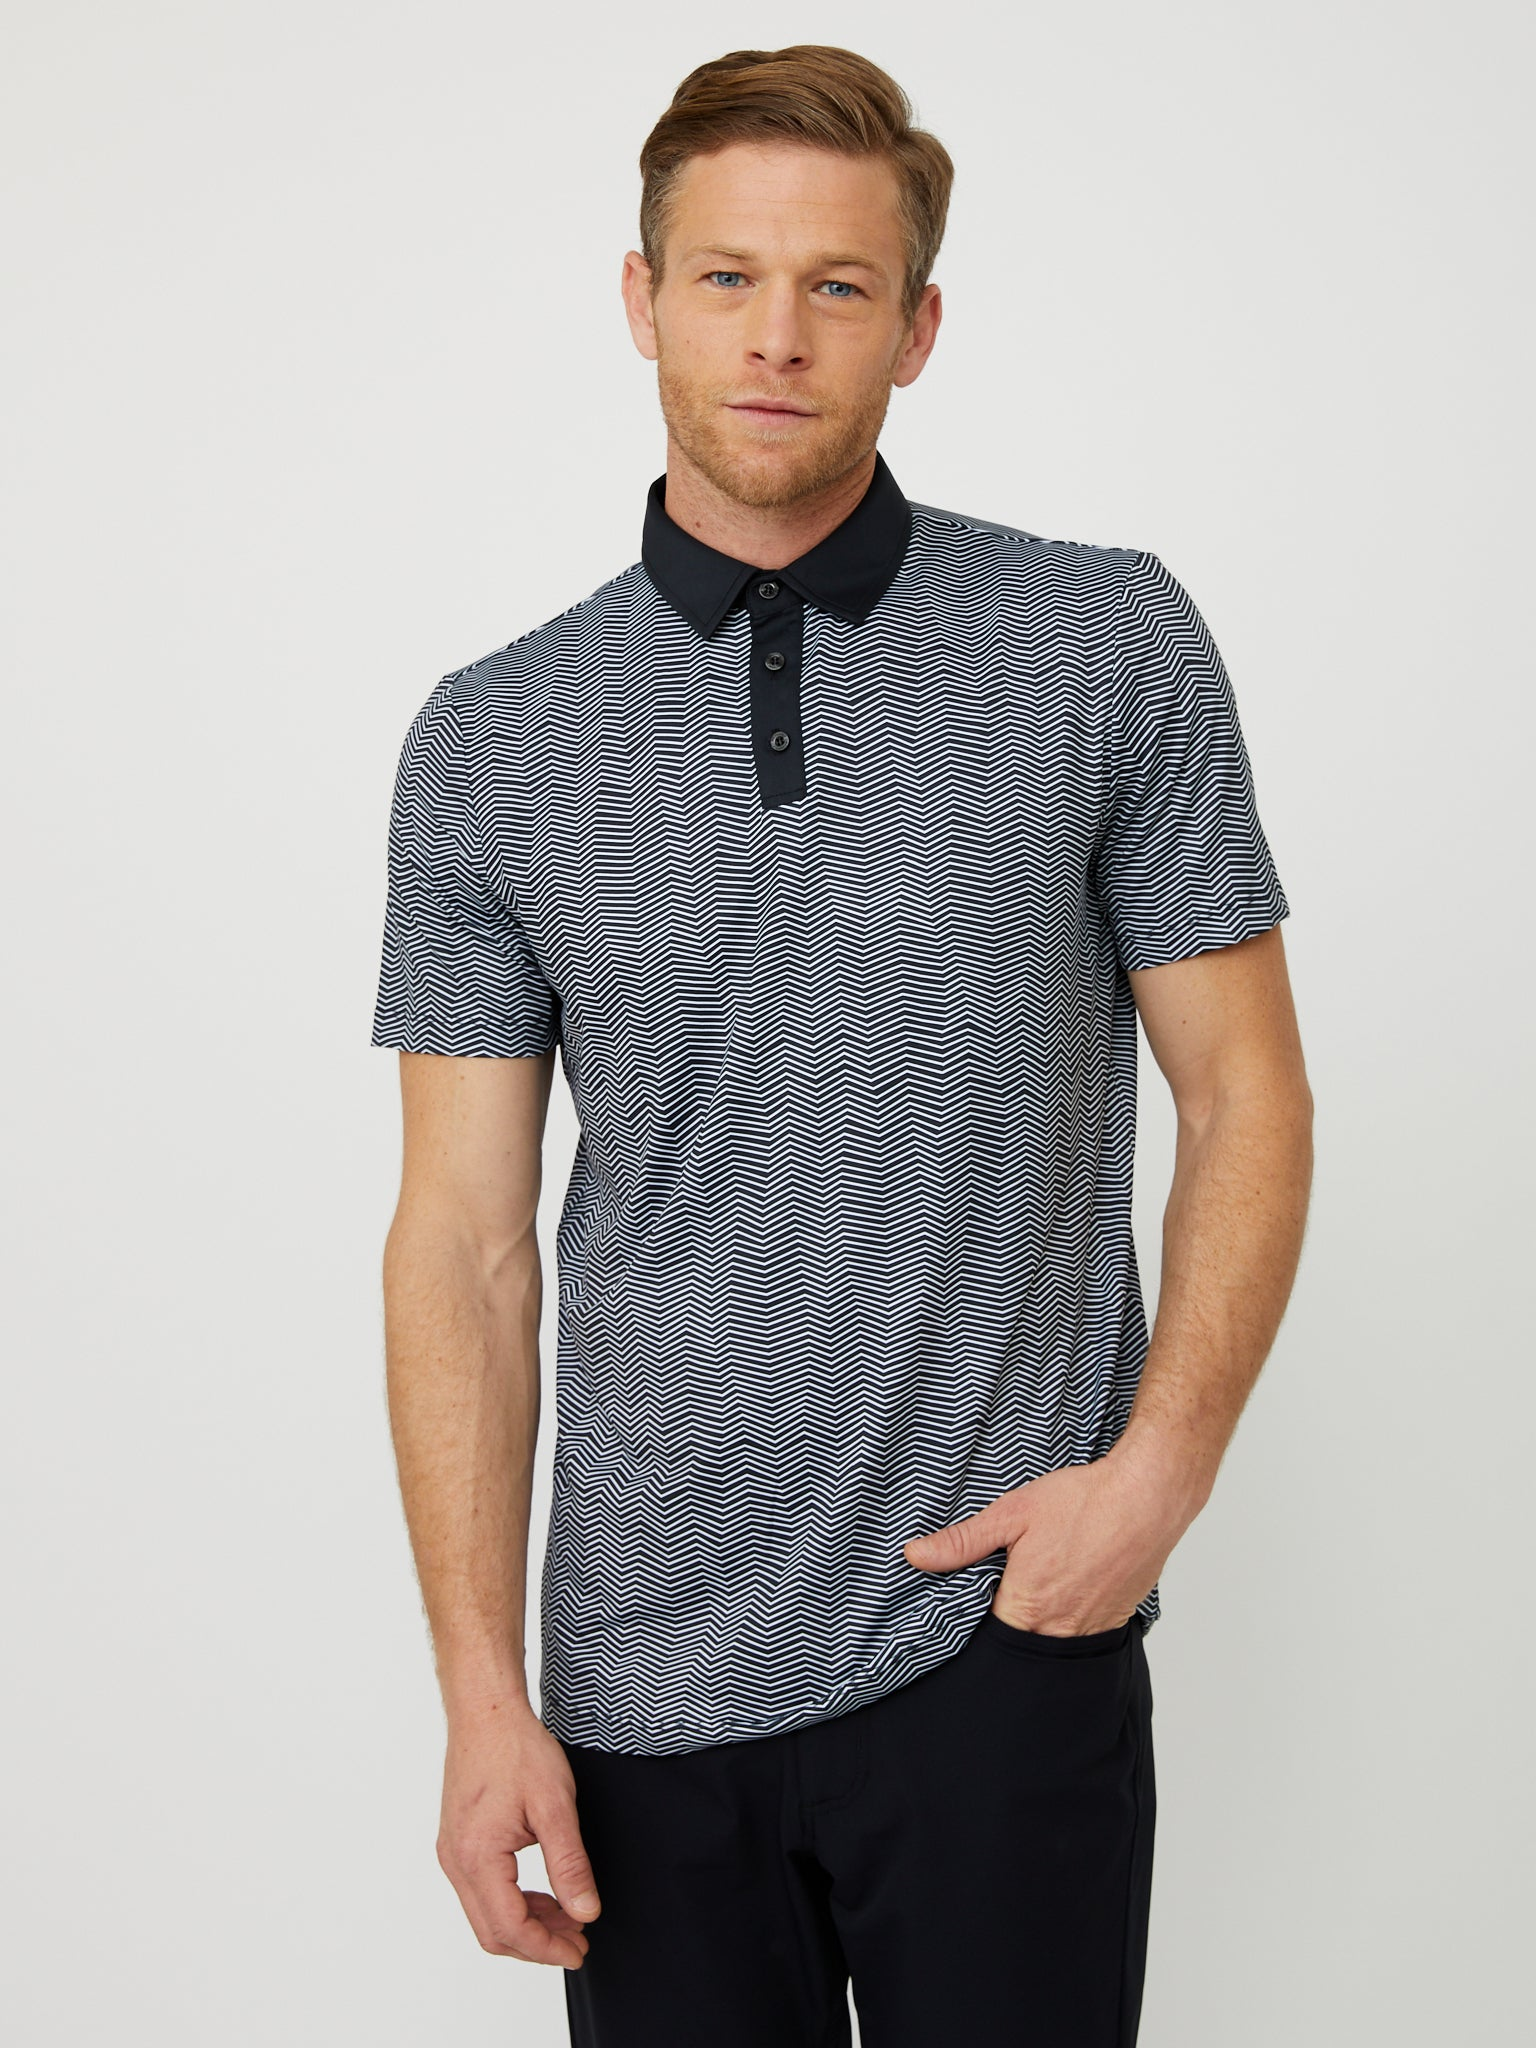 Isola Polo in Black